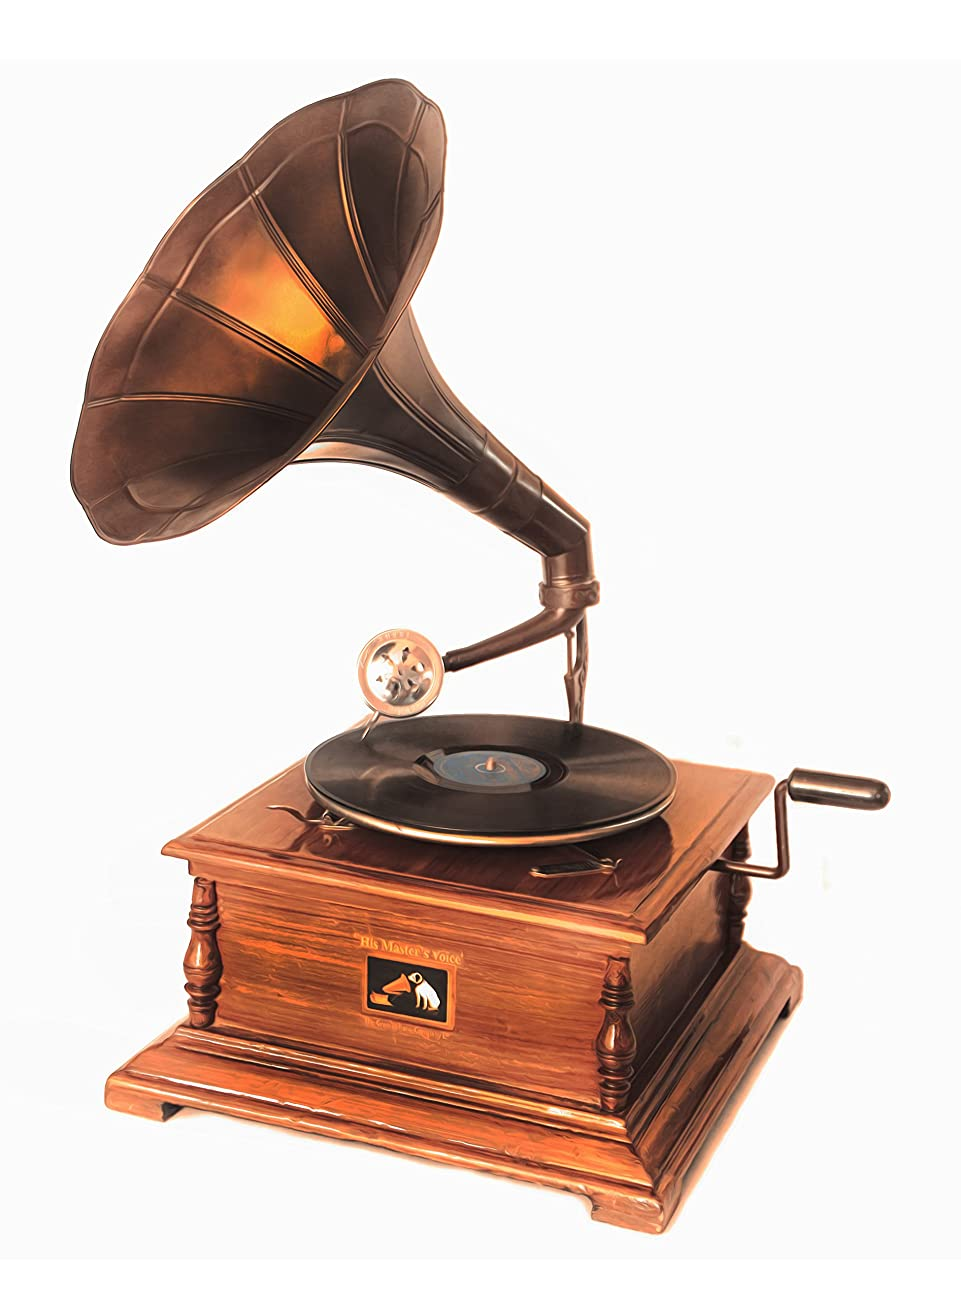 WinnerBrown Home Décor Metal Wood Brass Antique Finish Gramophone Record Player, 27 inch 2